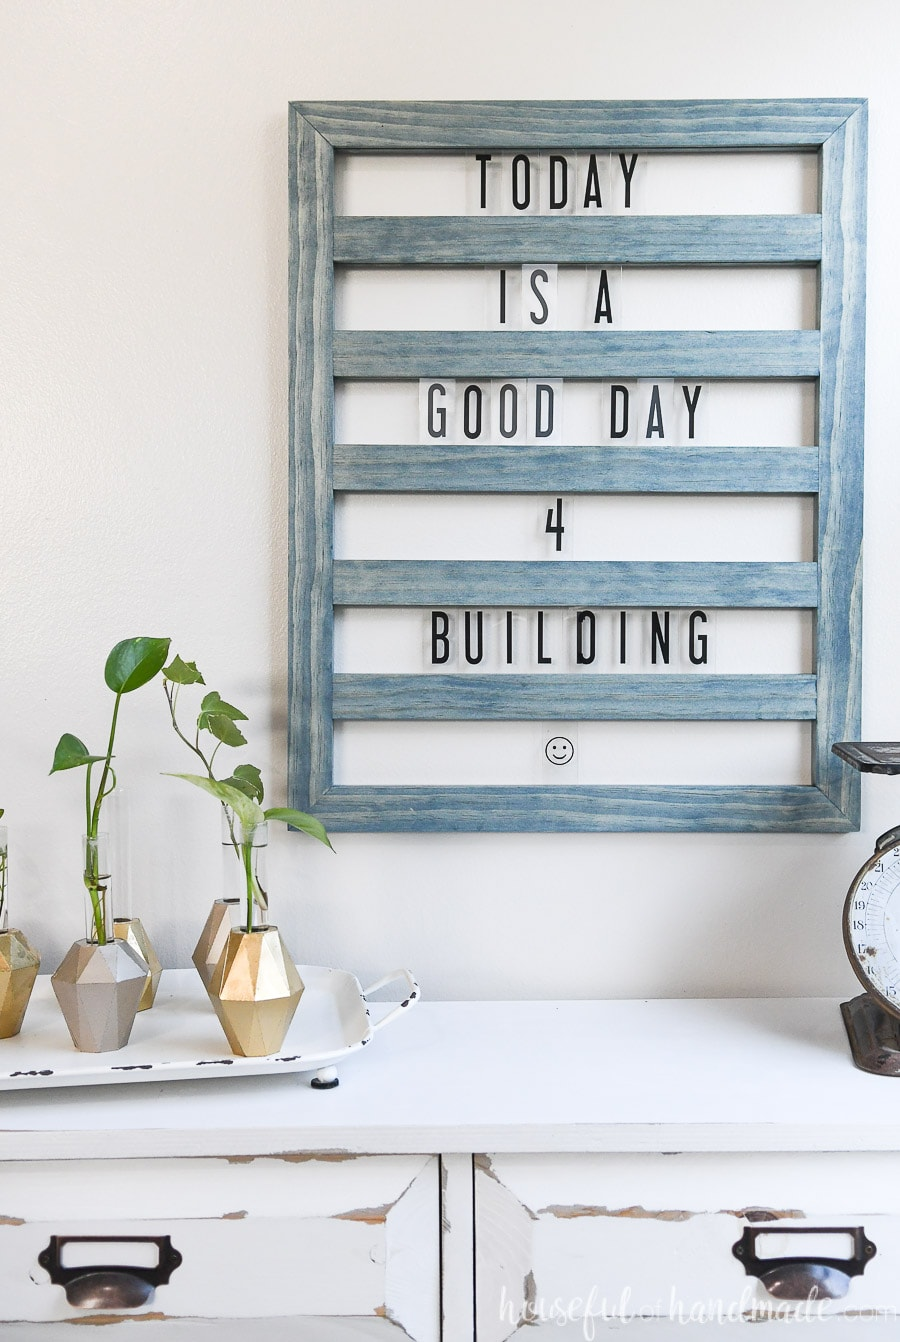 Worn navy stained wood sliding letter board hanging on the wall above a console table.